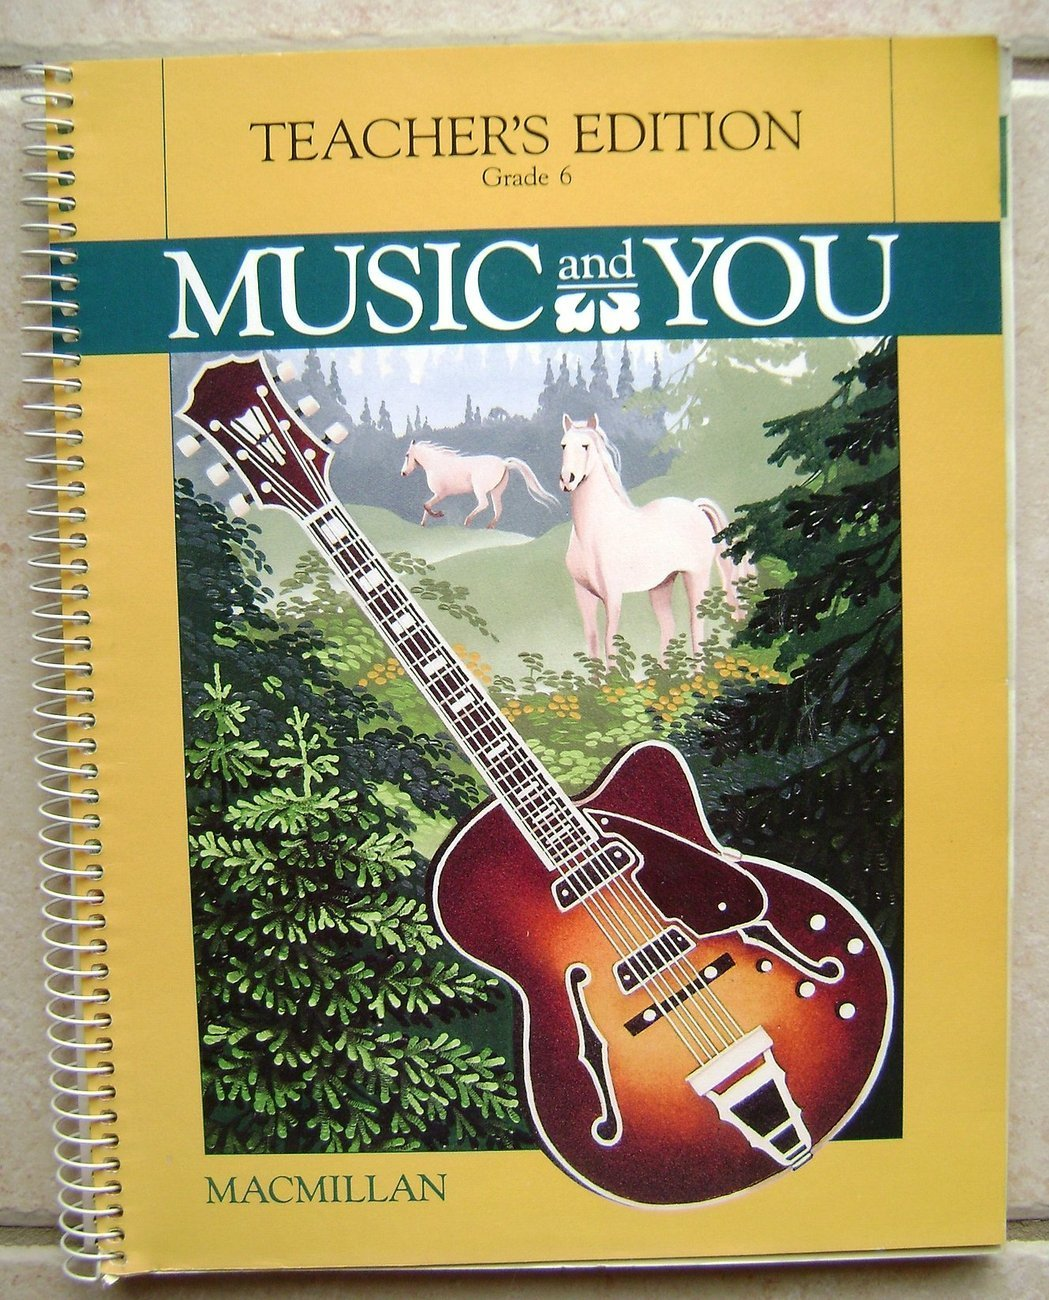 Primary image for Music and You, Grade 6, Teacher's Edition, Macmillan Spiral Bound